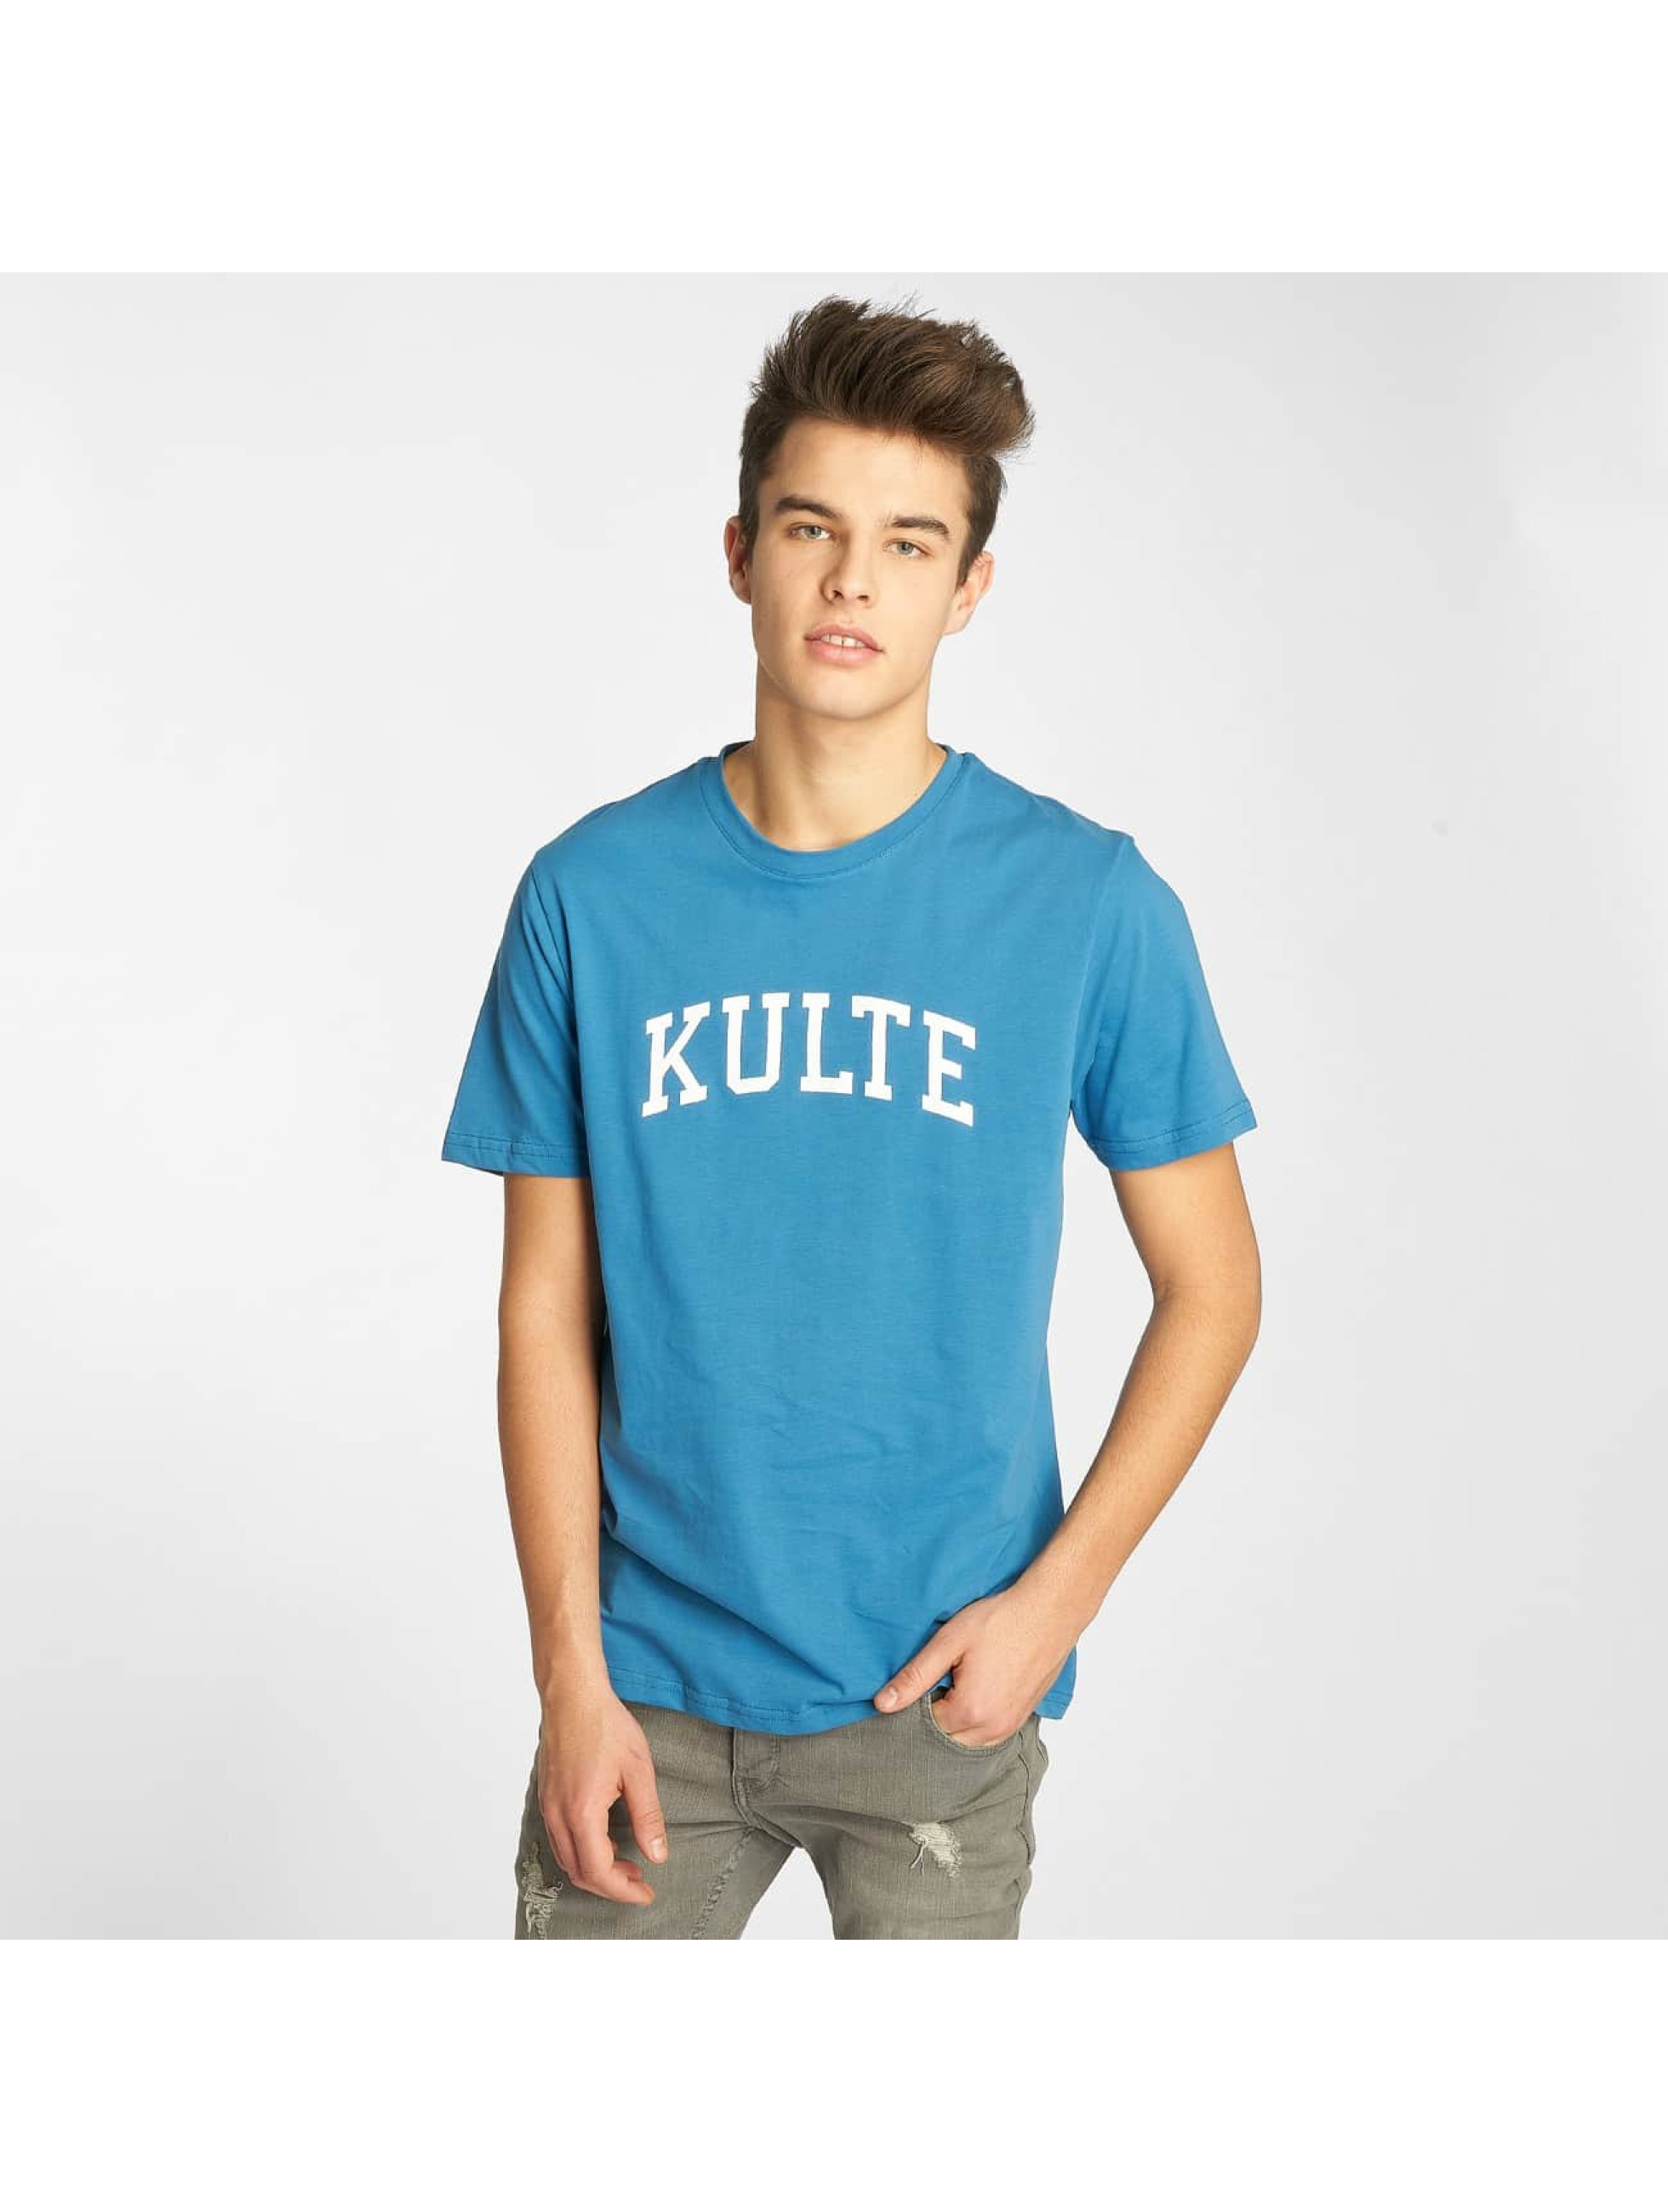 Kulte T-Shirt Corpo College blue